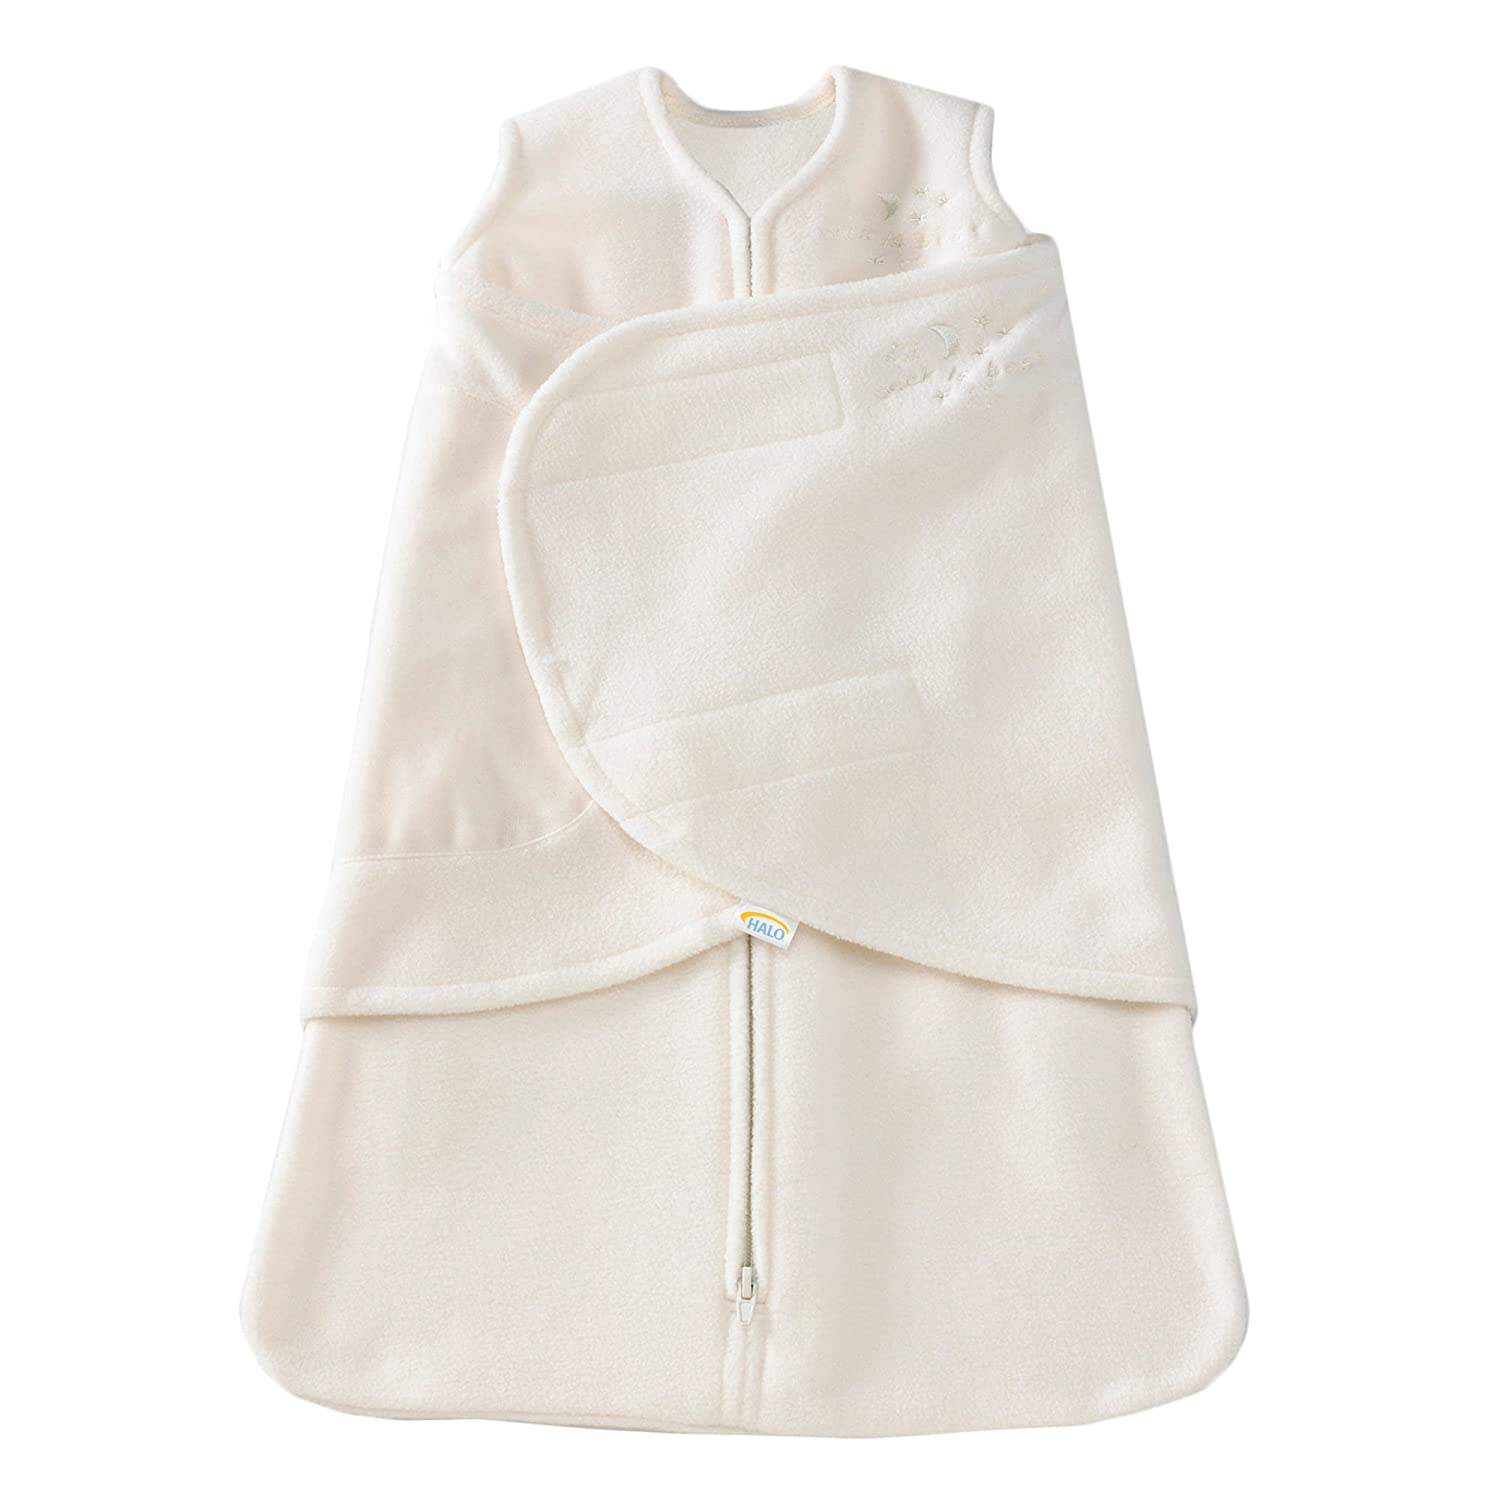 71QLfgo1DuL. SL1500 The Best Swaddle Blankets For Baby 2021